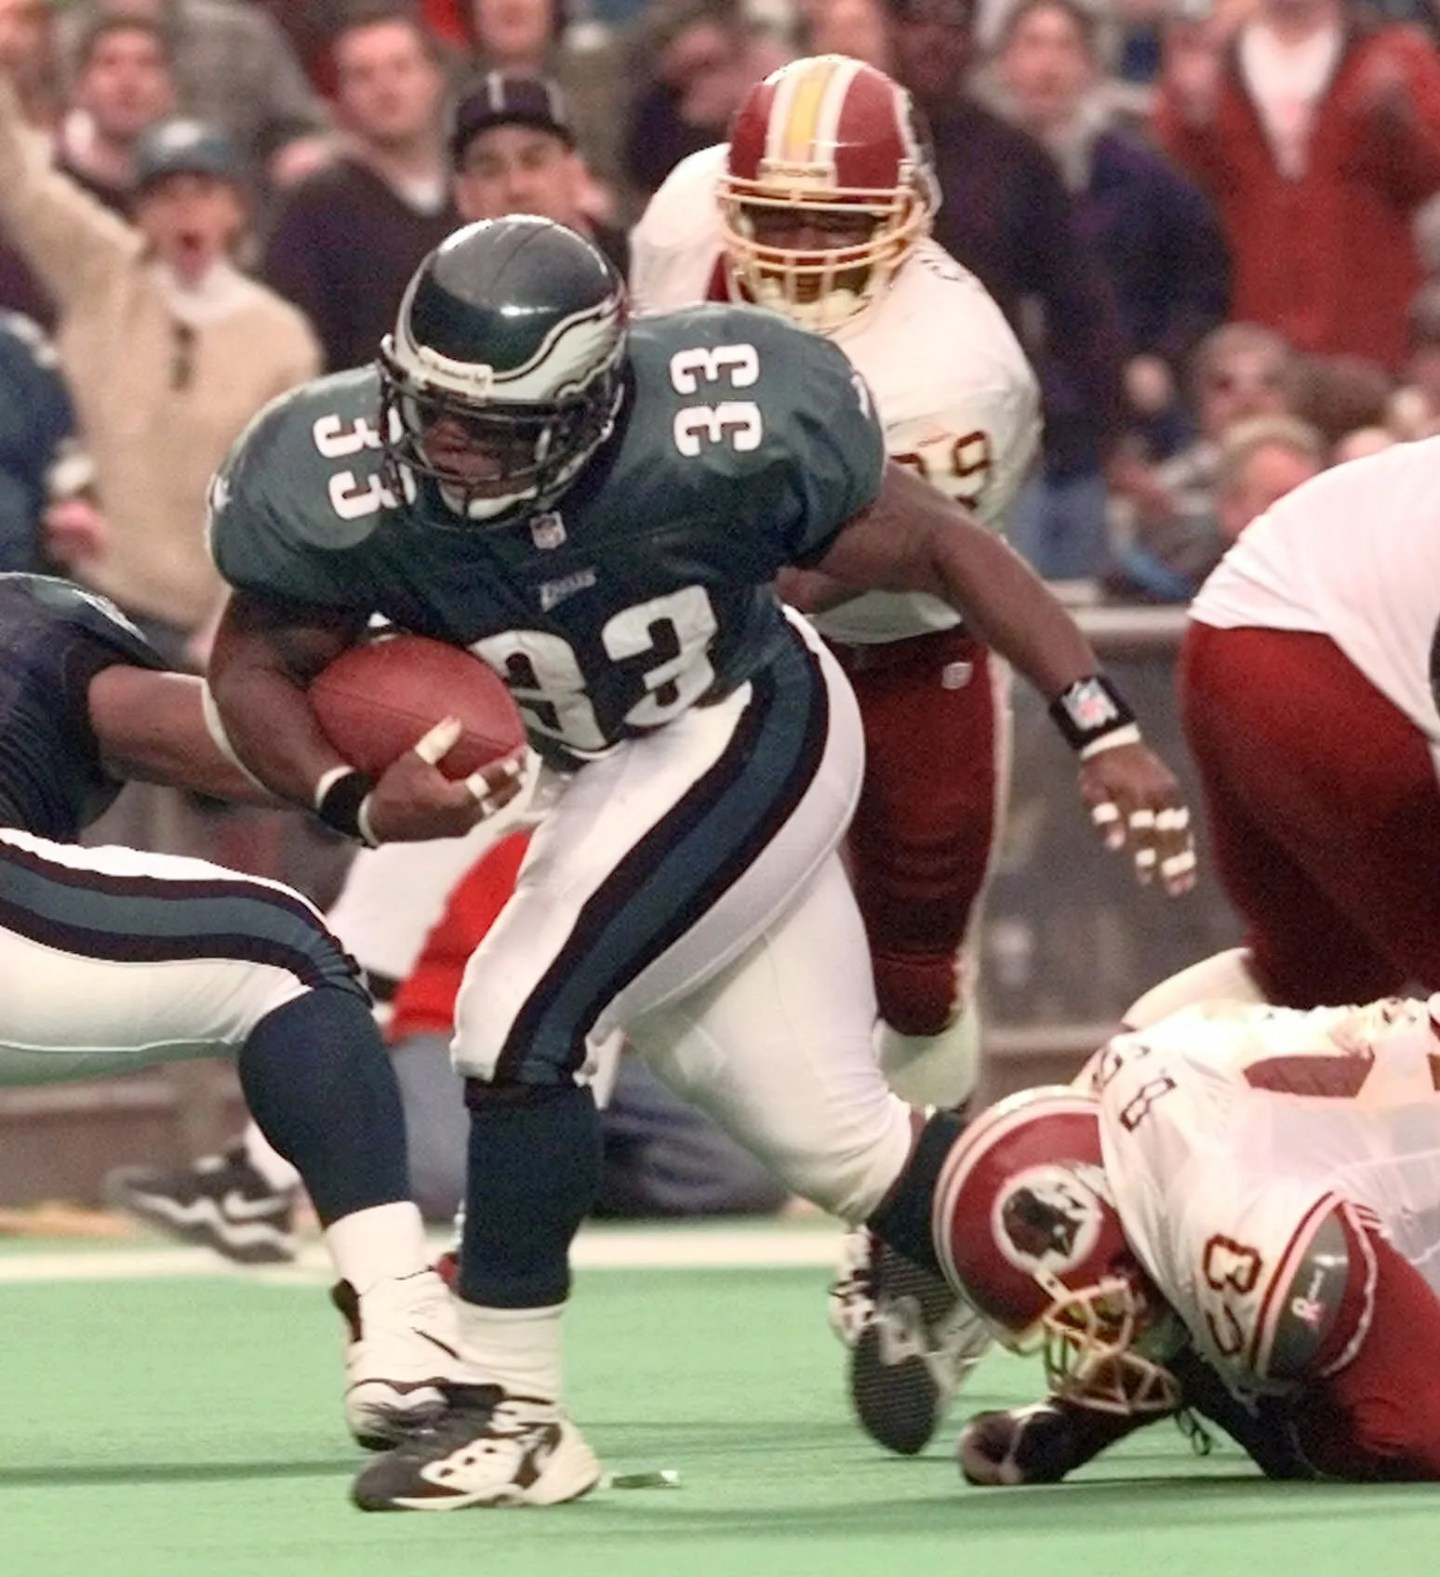 Eric Bieniemy rushed for 1,589 yards over nine NFL seasons, including 75 yards during his final season while playing for Andy Reid and the Eagles.